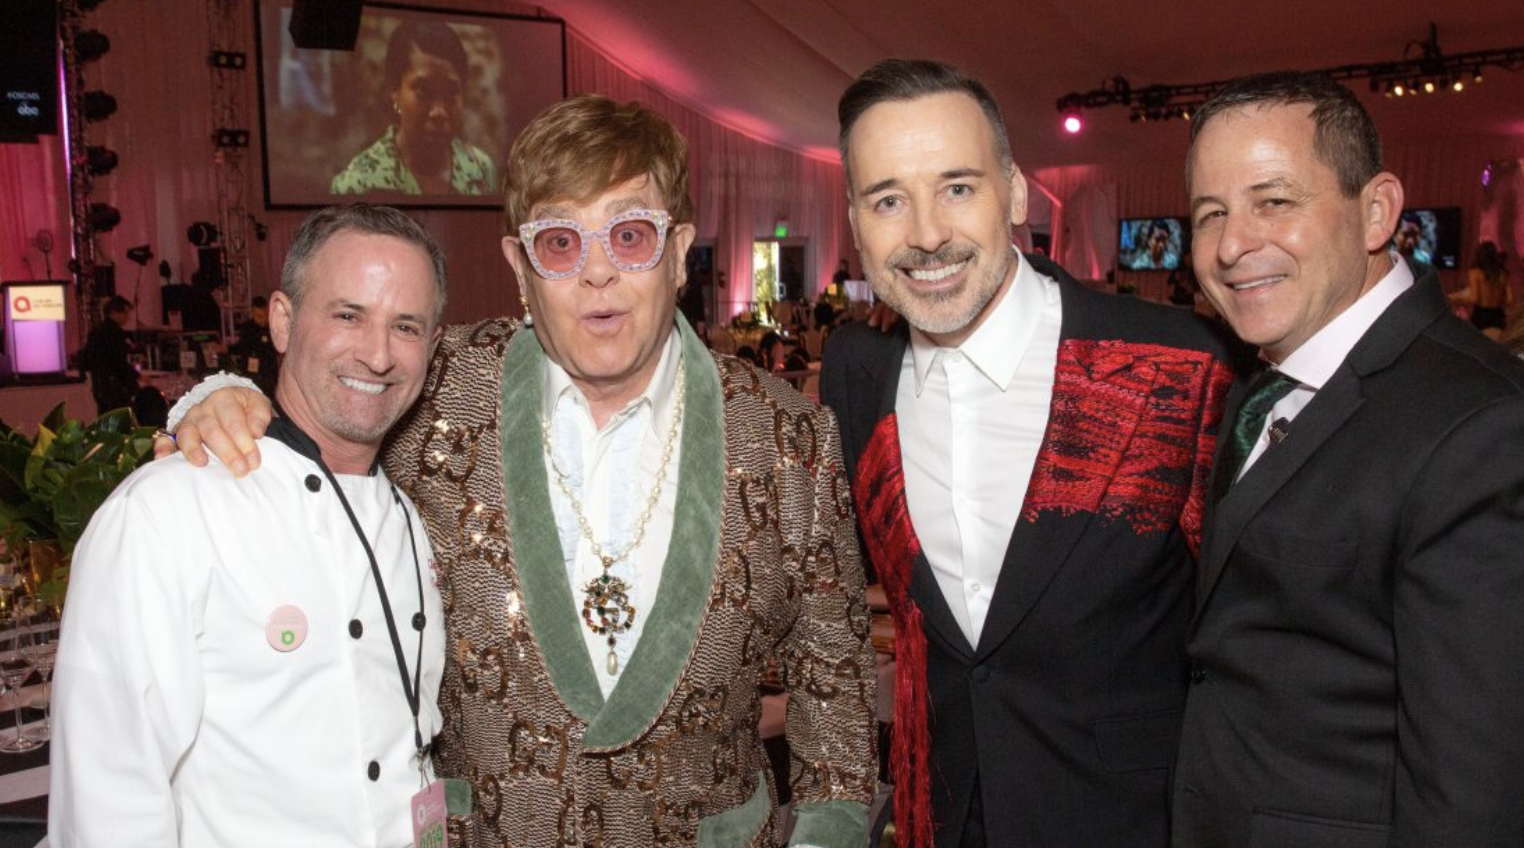 Chef Wayne Elias (left) and his business partner Chris Diamond (right) join Sir Elton John and husband David Furnish Photo Courtesy of Brian To/ Crumble Catering